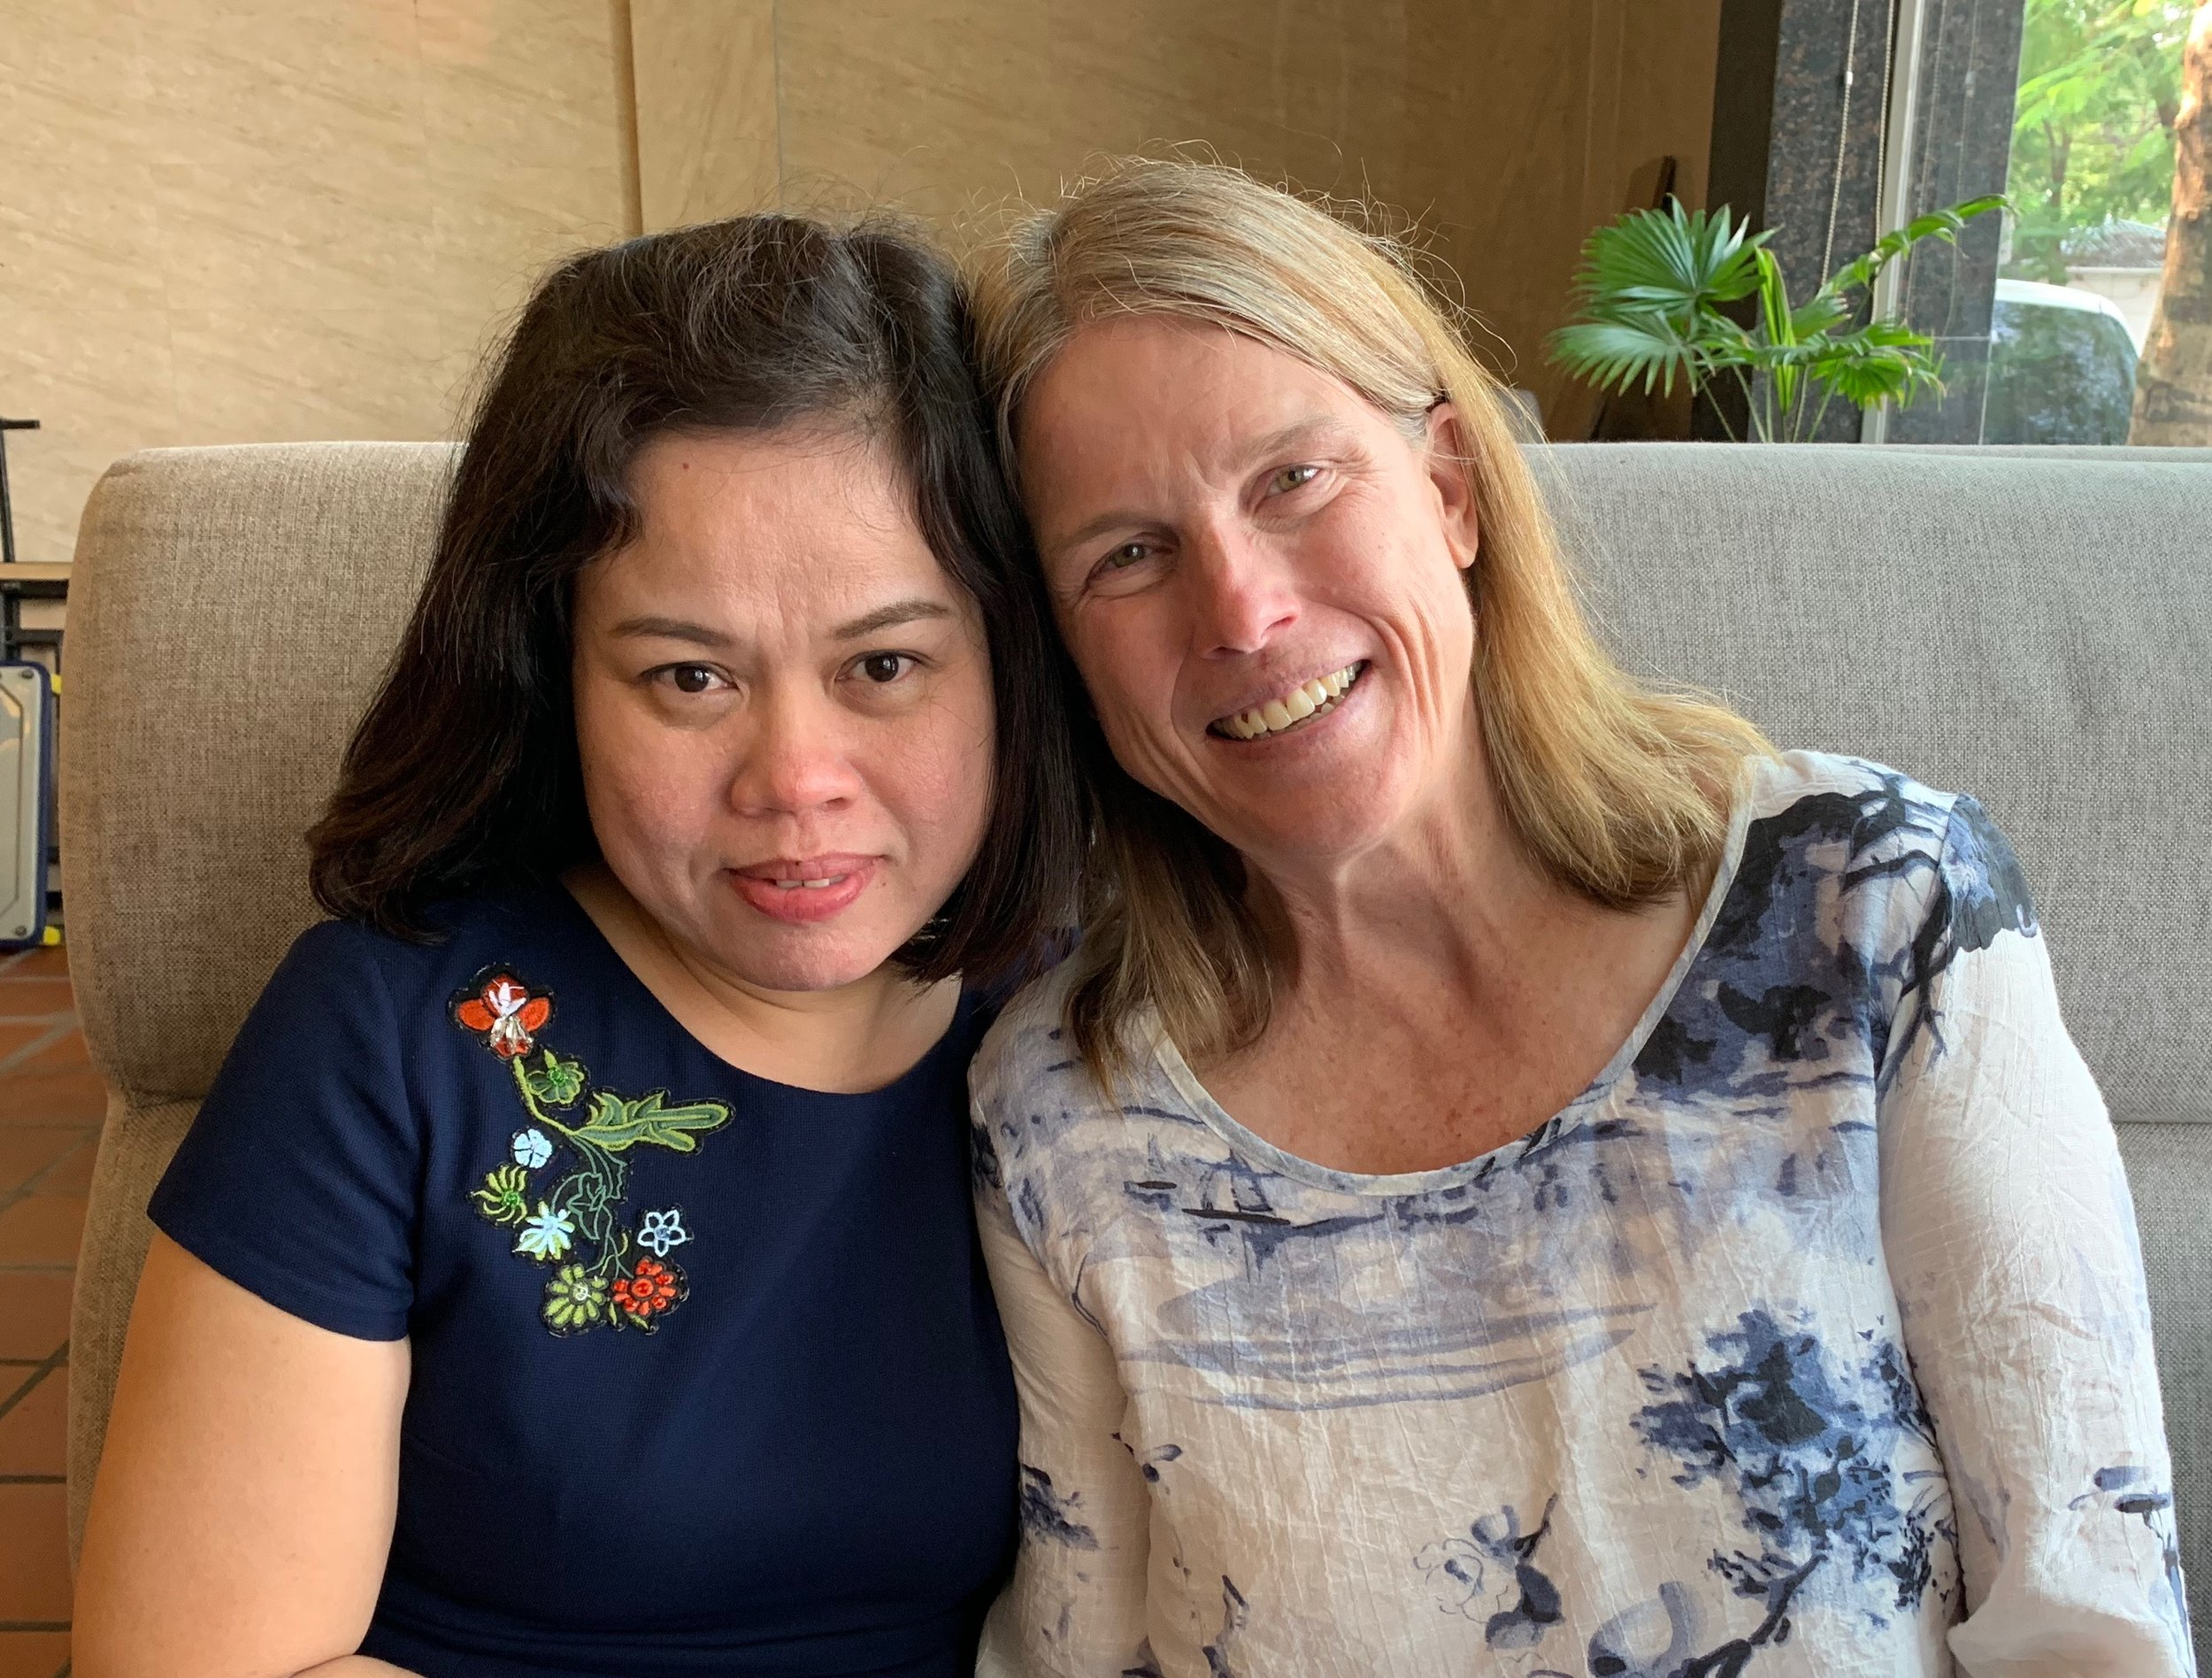 """Dung Vu and Barbara Brumet, whose fathers died fighting on opposite sides of the Vietnam/American War. Dung Vu's father died on April 8, 1972, before she was born. Barbara's father died on April 9, 1964, when Barbara was six years old. Barbara was the first to sign up for the 2018 trip. Dung Vu wasn't sure she wanted to come to the 2 Sides Project meeting, but in the end she was happy she did. """"We are all proud of our fathers, but we are not proud of war. I would do anything to prevent war."""""""